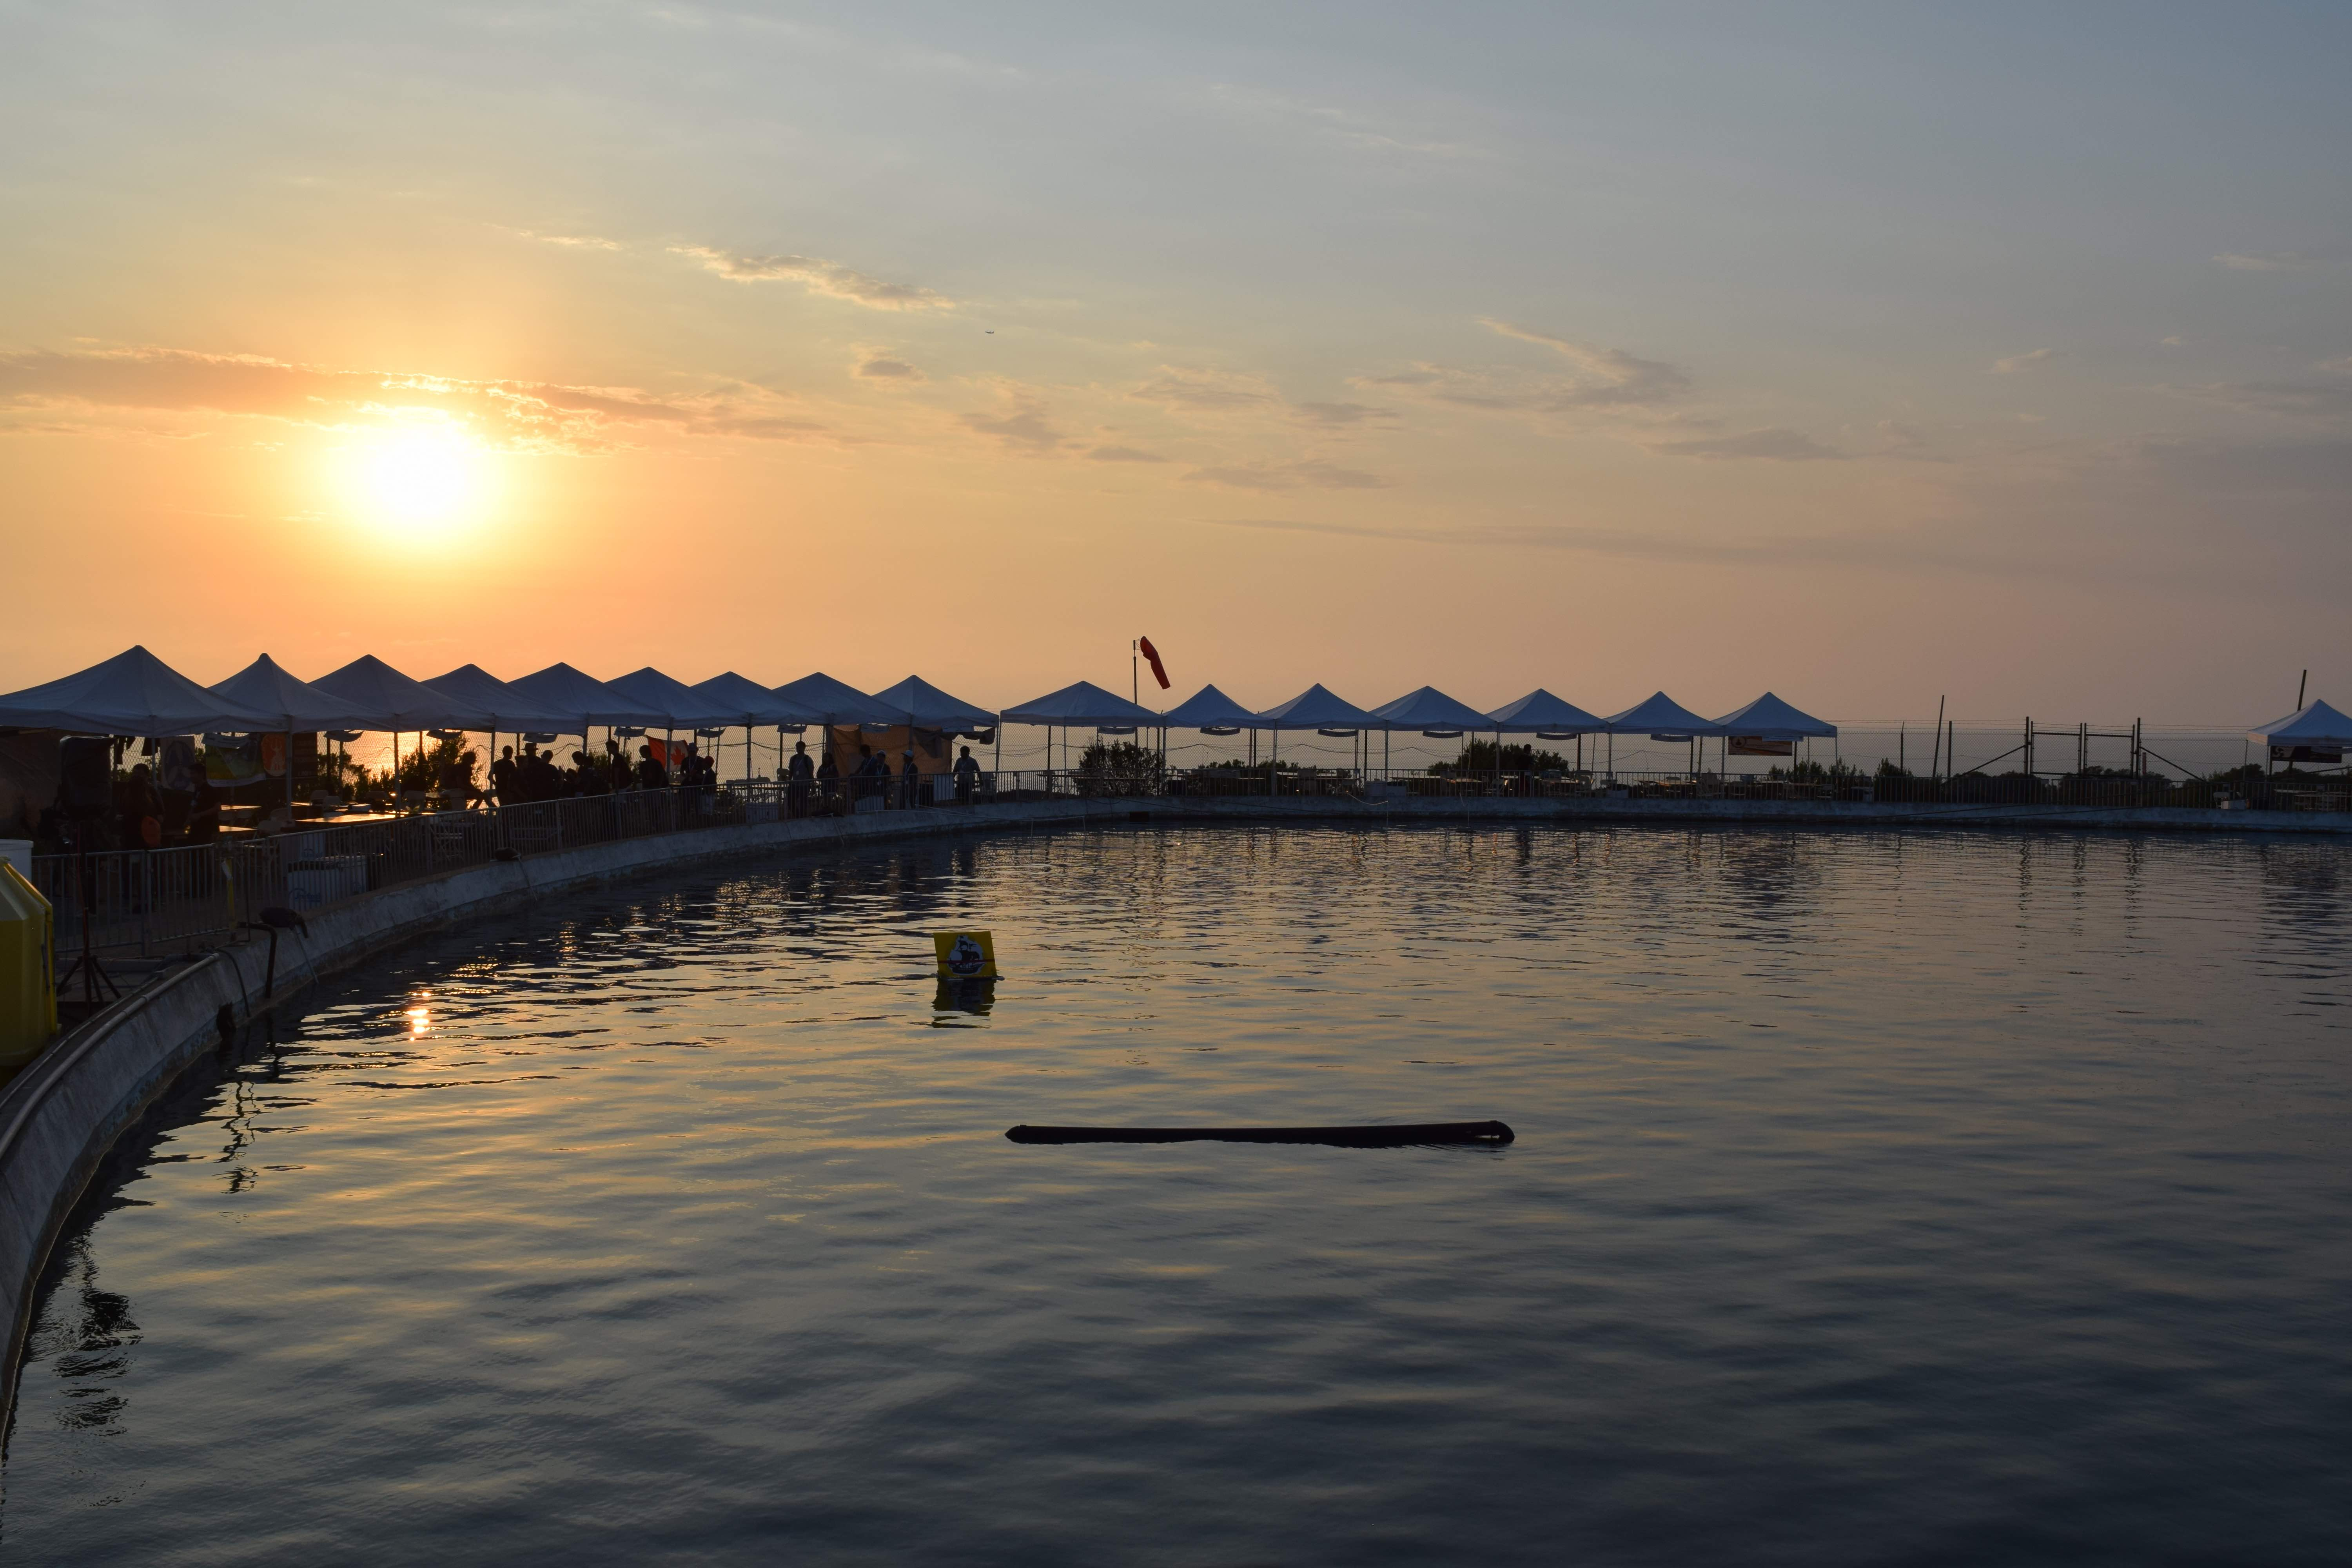 sunset over water at competition site